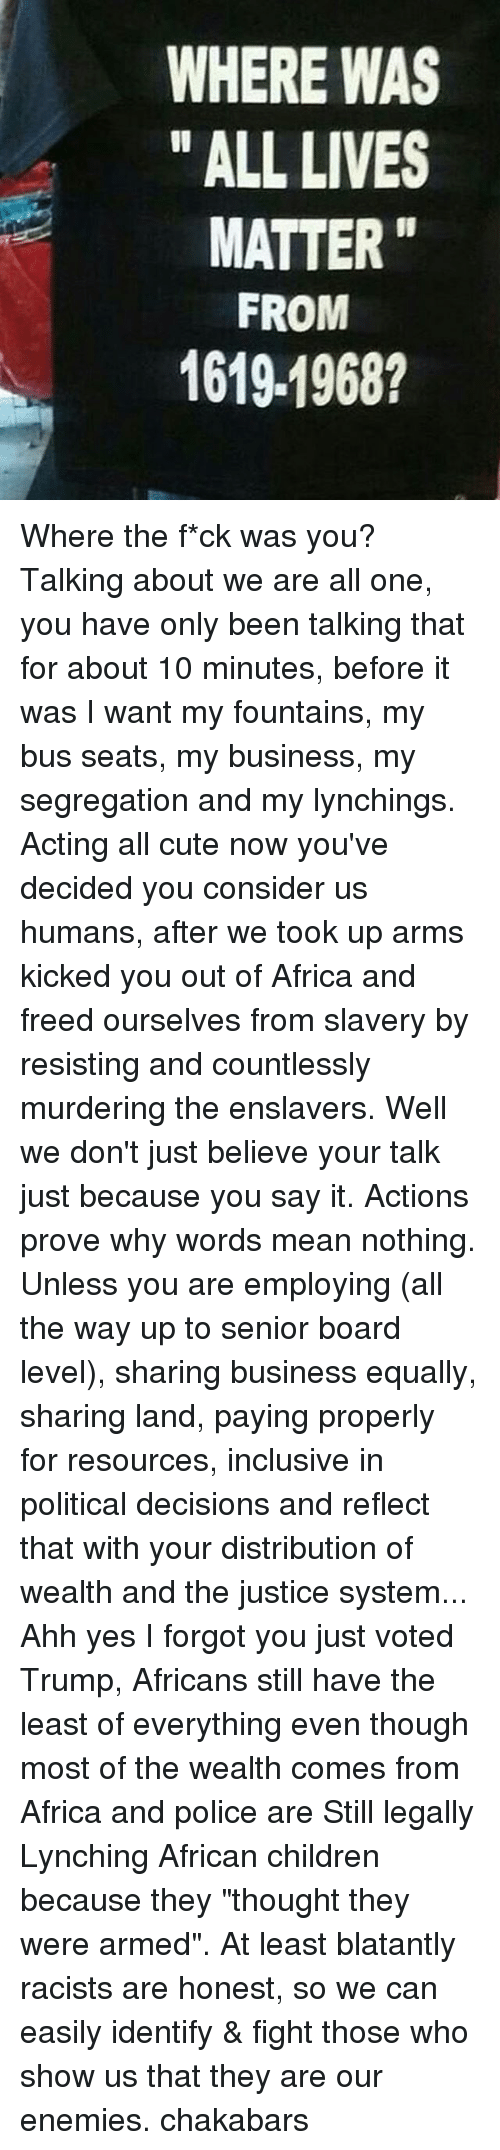 "Africa, All Lives Matter, and All Lives Matter: WHERE WAS  ALL LIVES  MATTER  FROM  1619 1968? Where the f*ck was you? Talking about we are all one, you have only been talking that for about 10 minutes, before it was I want my fountains, my bus seats, my business, my segregation and my lynchings. Acting all cute now you've decided you consider us humans, after we took up arms kicked you out of Africa and freed ourselves from slavery by resisting and countlessly murdering the enslavers. Well we don't just believe your talk just because you say it. Actions prove why words mean nothing. Unless you are employing (all the way up to senior board level), sharing business equally, sharing land, paying properly for resources, inclusive in political decisions and reflect that with your distribution of wealth and the justice system... Ahh yes I forgot you just voted Trump, Africans still have the least of everything even though most of the wealth comes from Africa and police are Still legally Lynching African children because they ""thought they were armed"". At least blatantly racists are honest, so we can easily identify & fight those who show us that they are our enemies. chakabars"